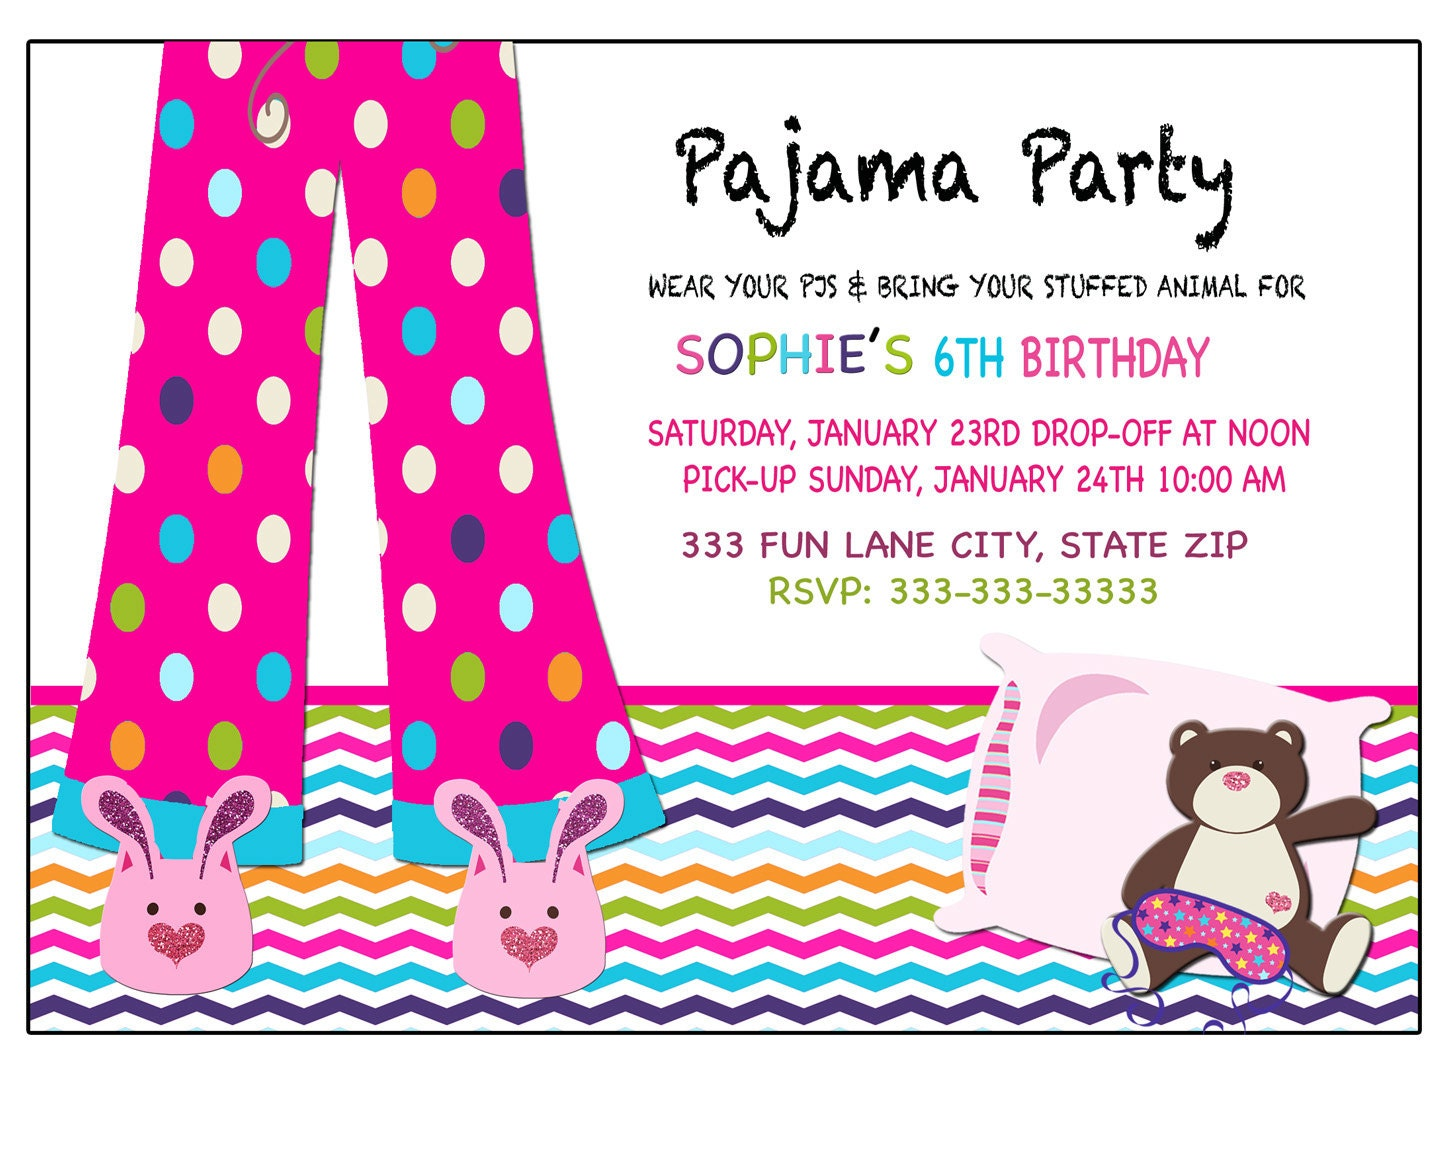 sleepover invitation pajama party invitation sleepover, Kreative einladungen